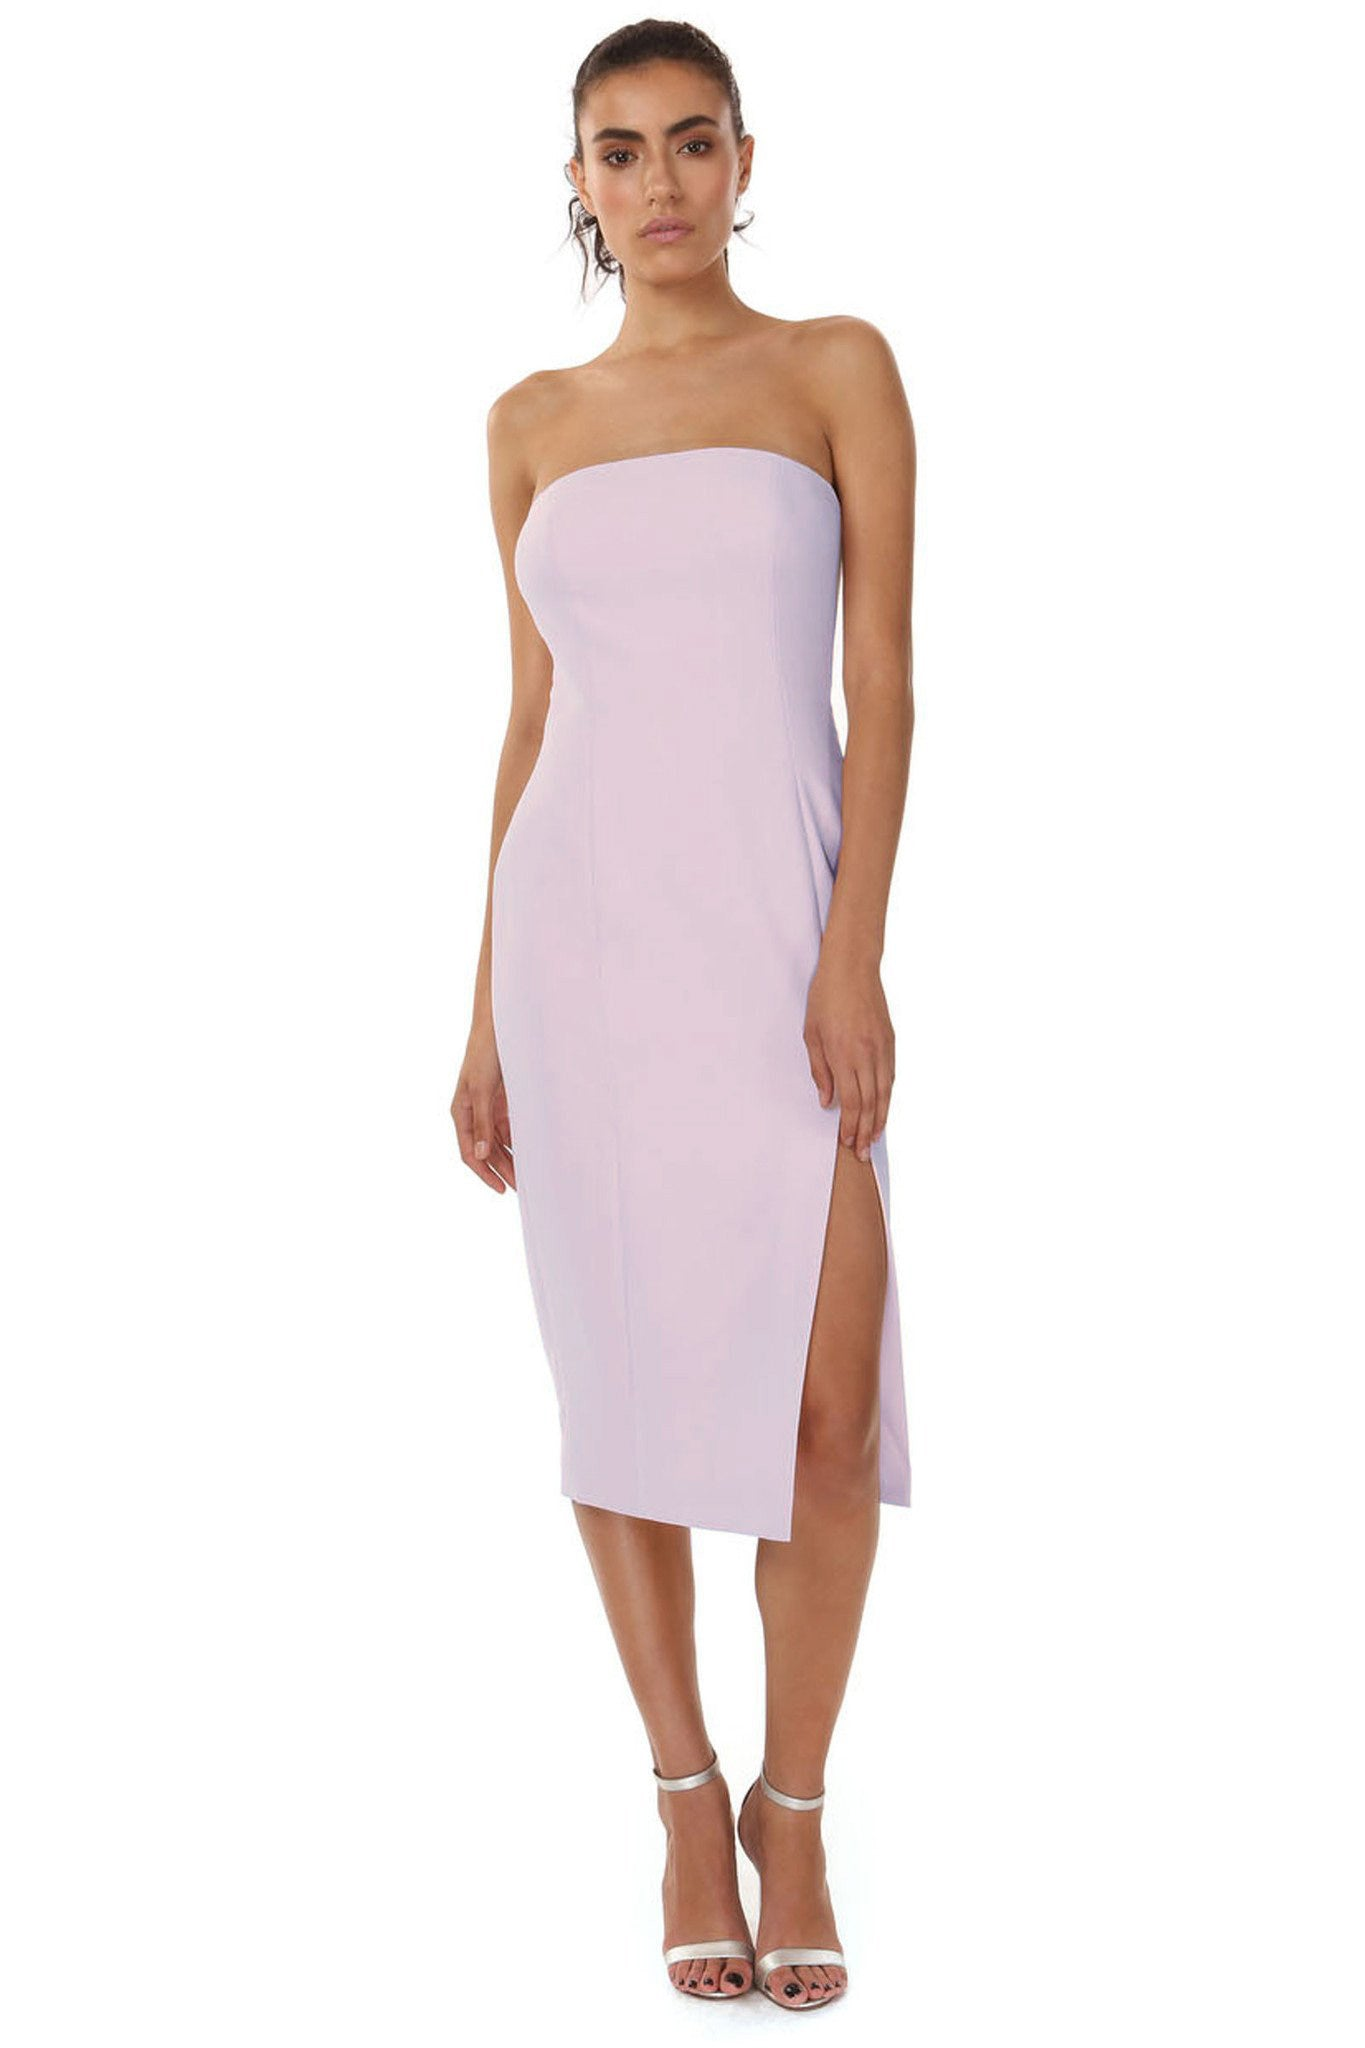 Jay Godfrey Strapless Dress with Slit - Front View